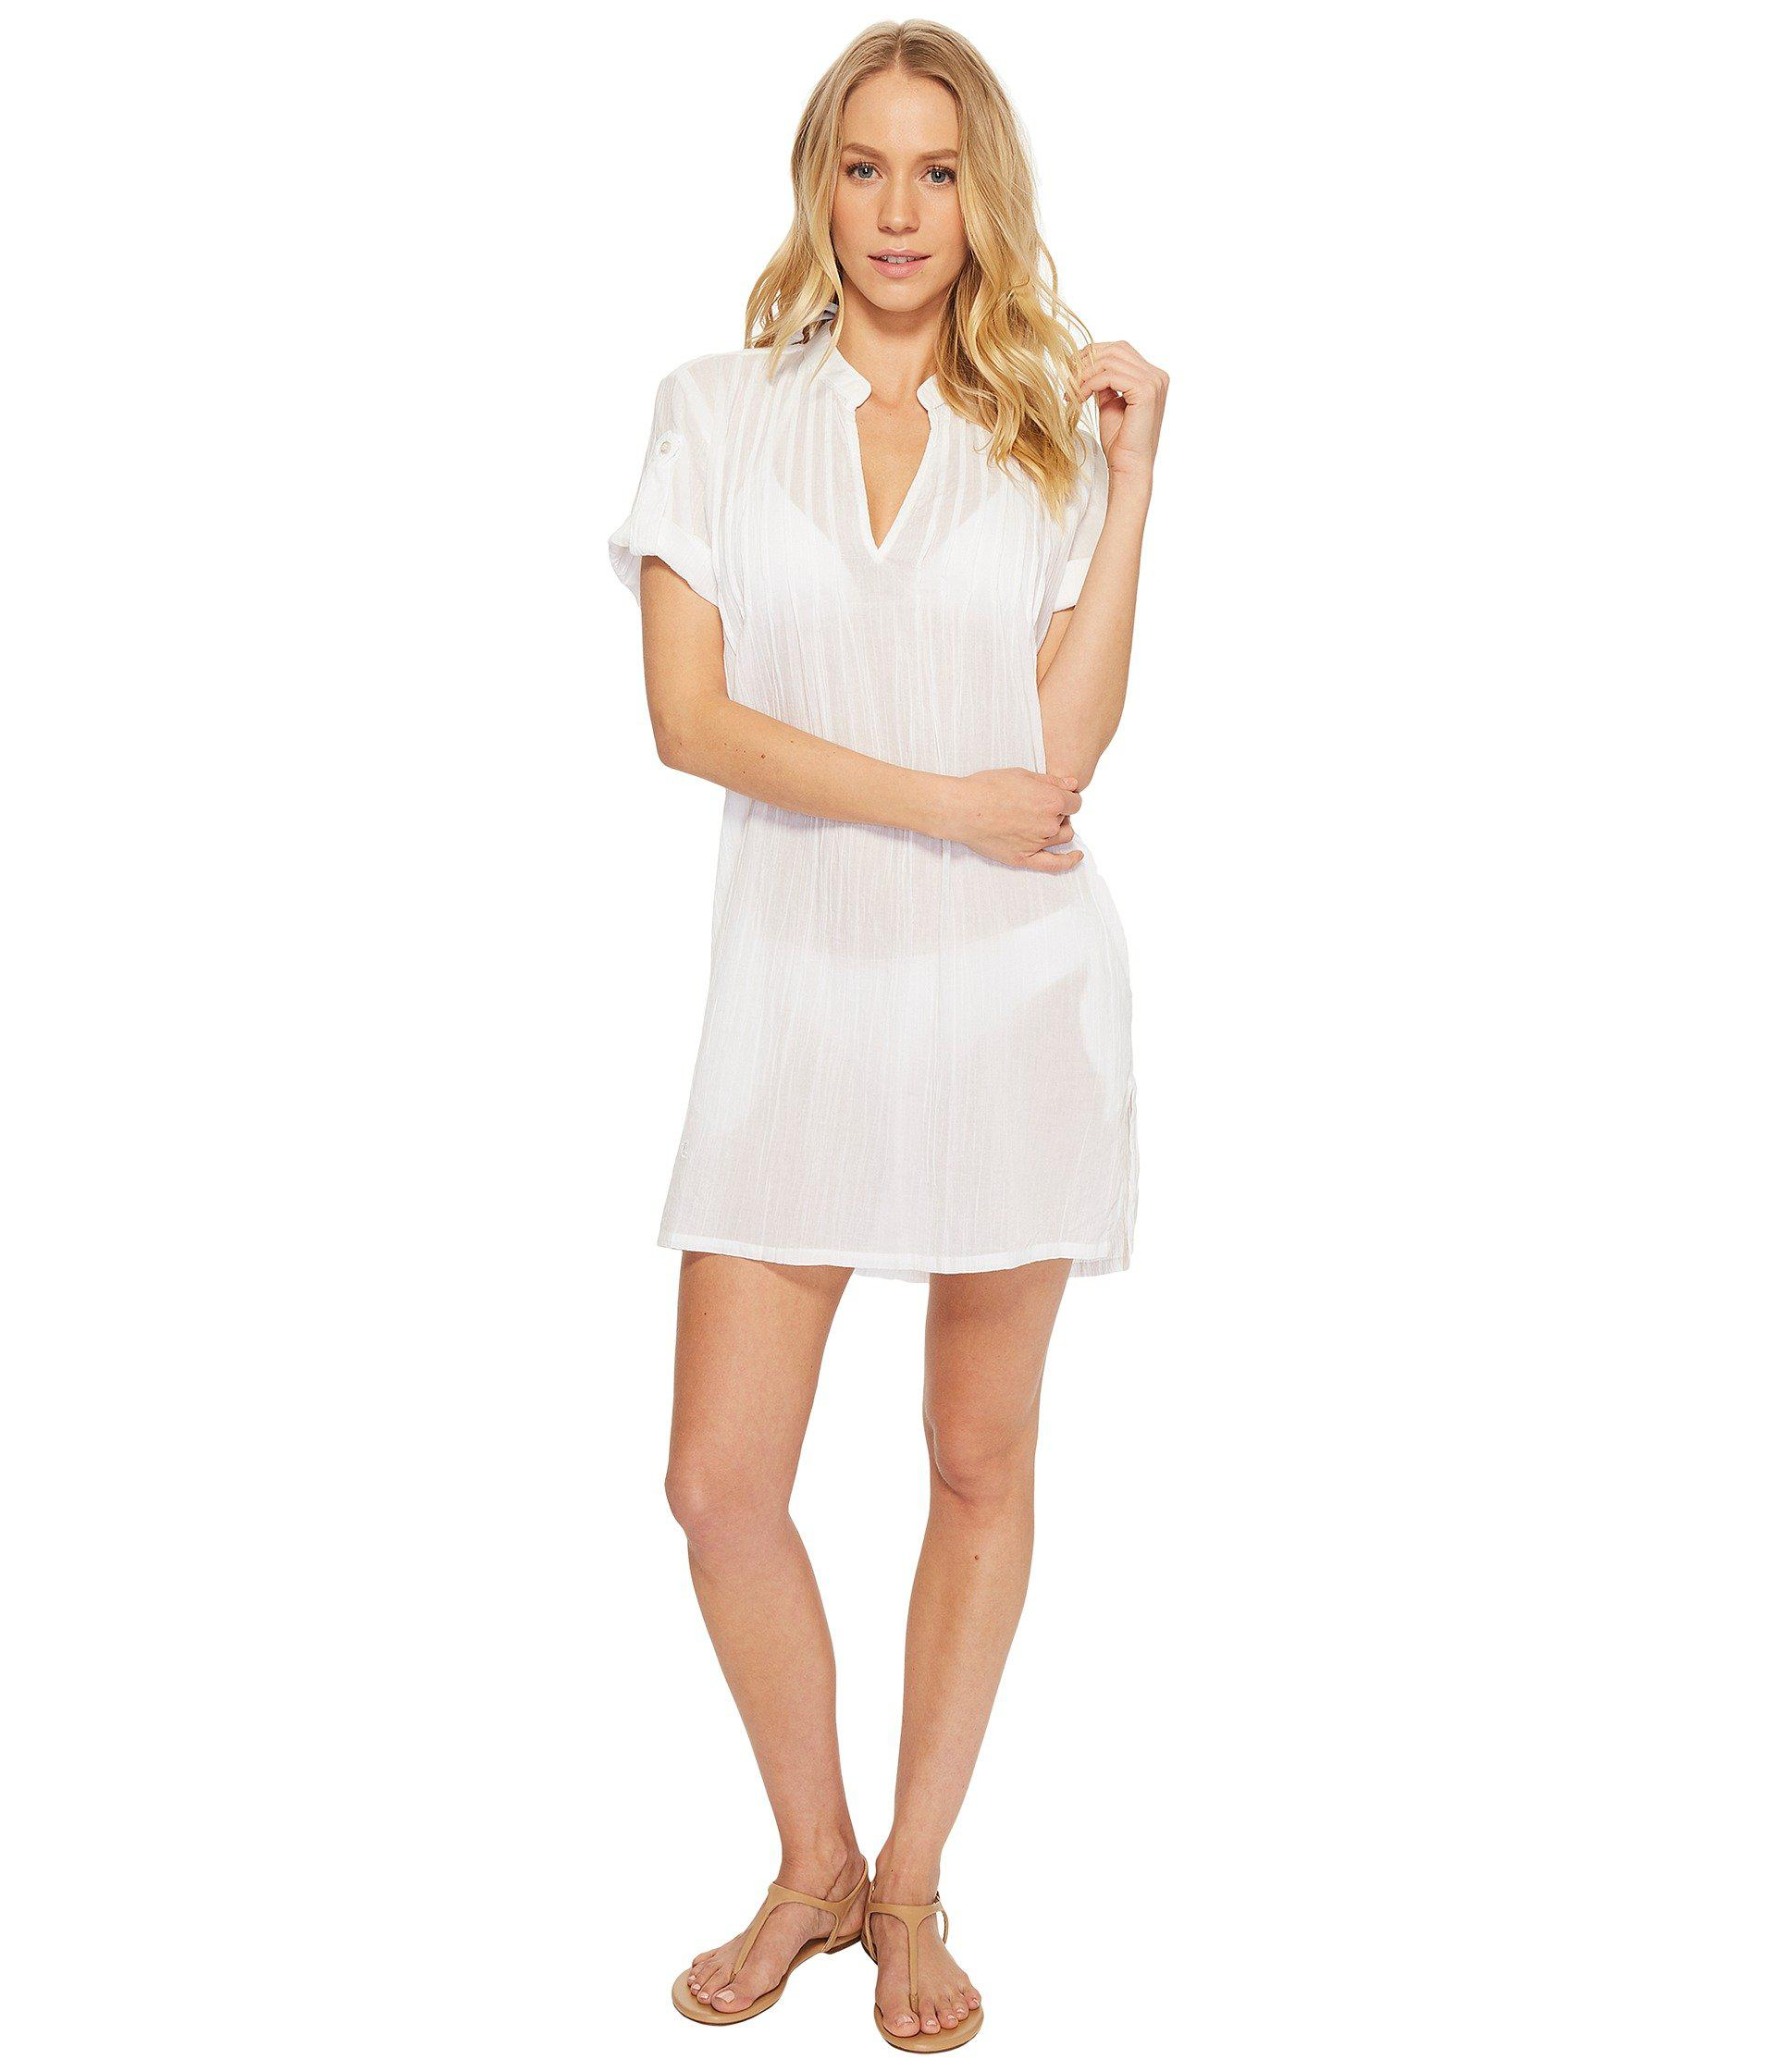 d5f58bca9f4 Lyst - Lauren by Ralph Lauren Crushed Cotton Darcy Tunic Cover-up ...